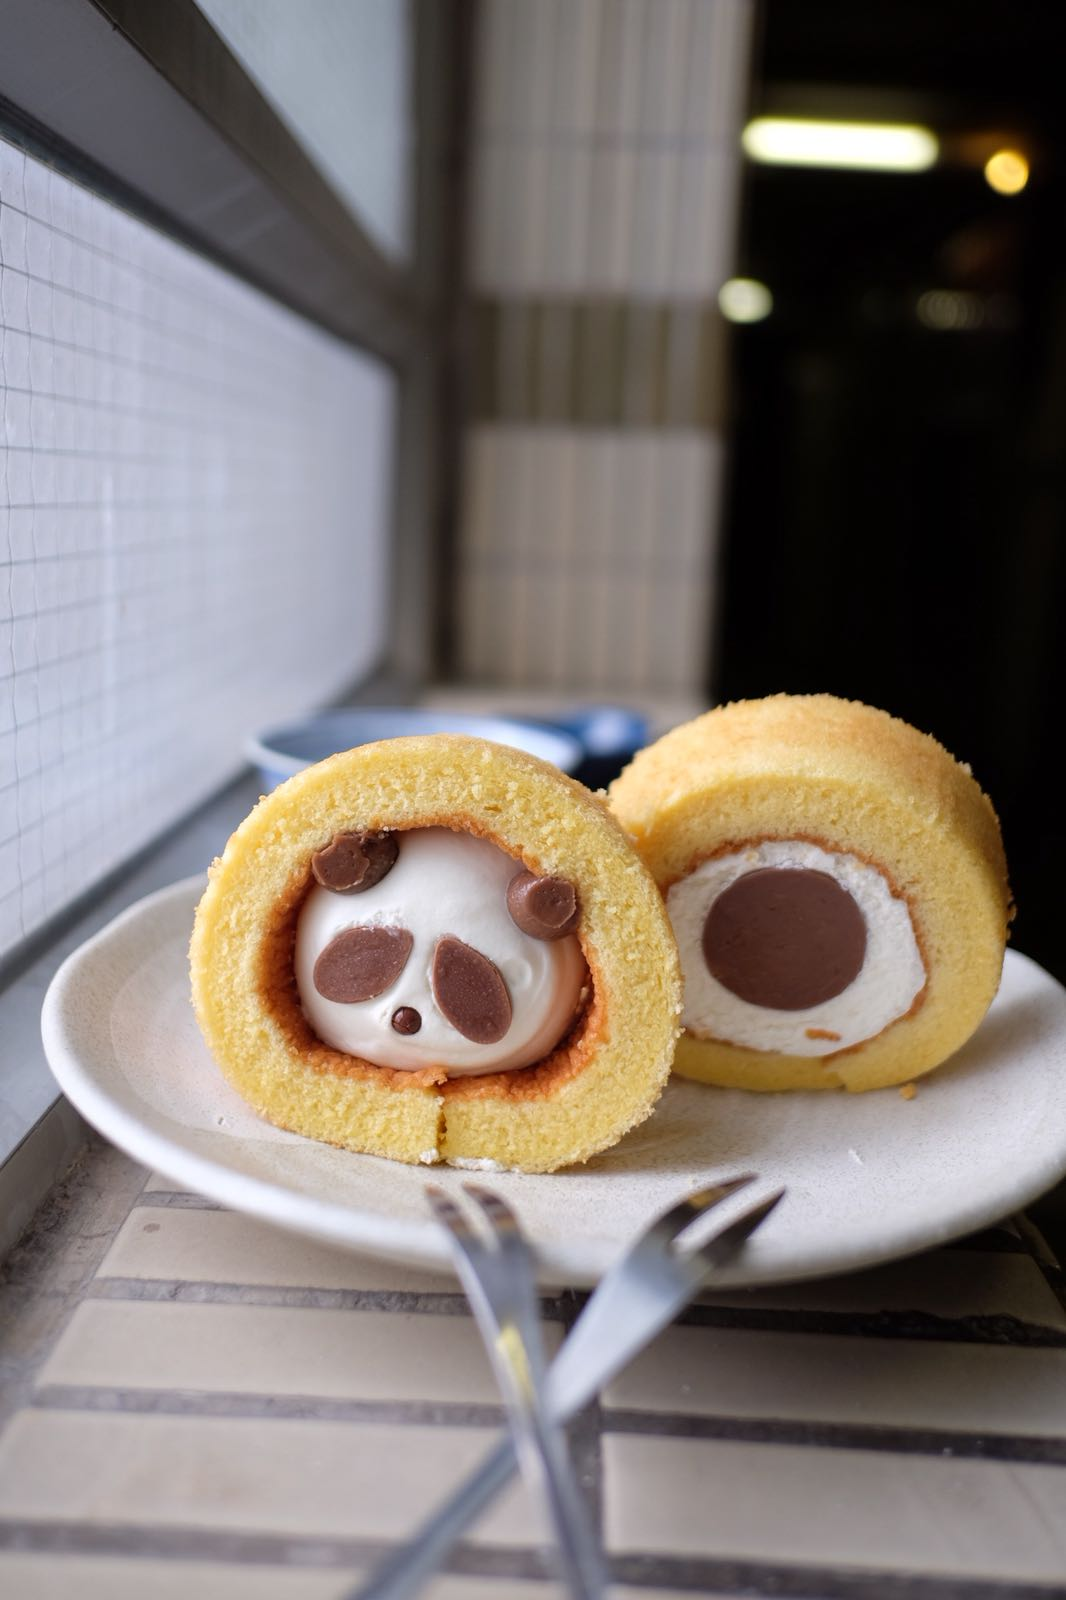 🐼Panda in a blanky🐼   A panda got caught in an Angel swiss roll in my kitchen